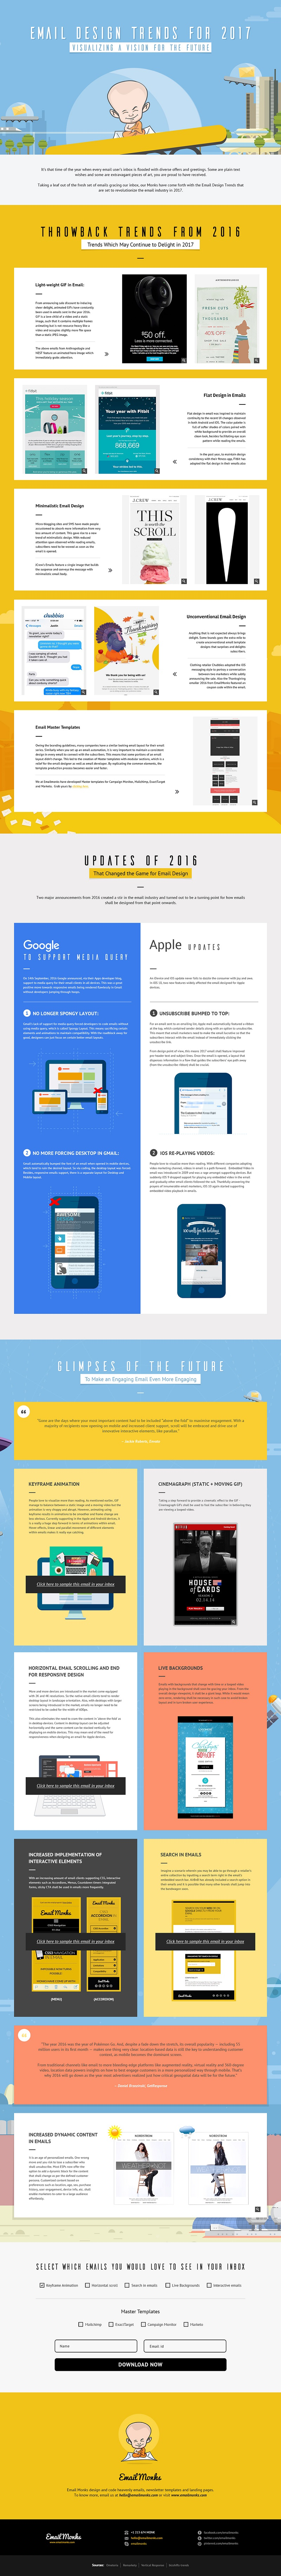 Fuel Your Campaigns with Email Design Trends 2017 [Infographic] | Social Media Today